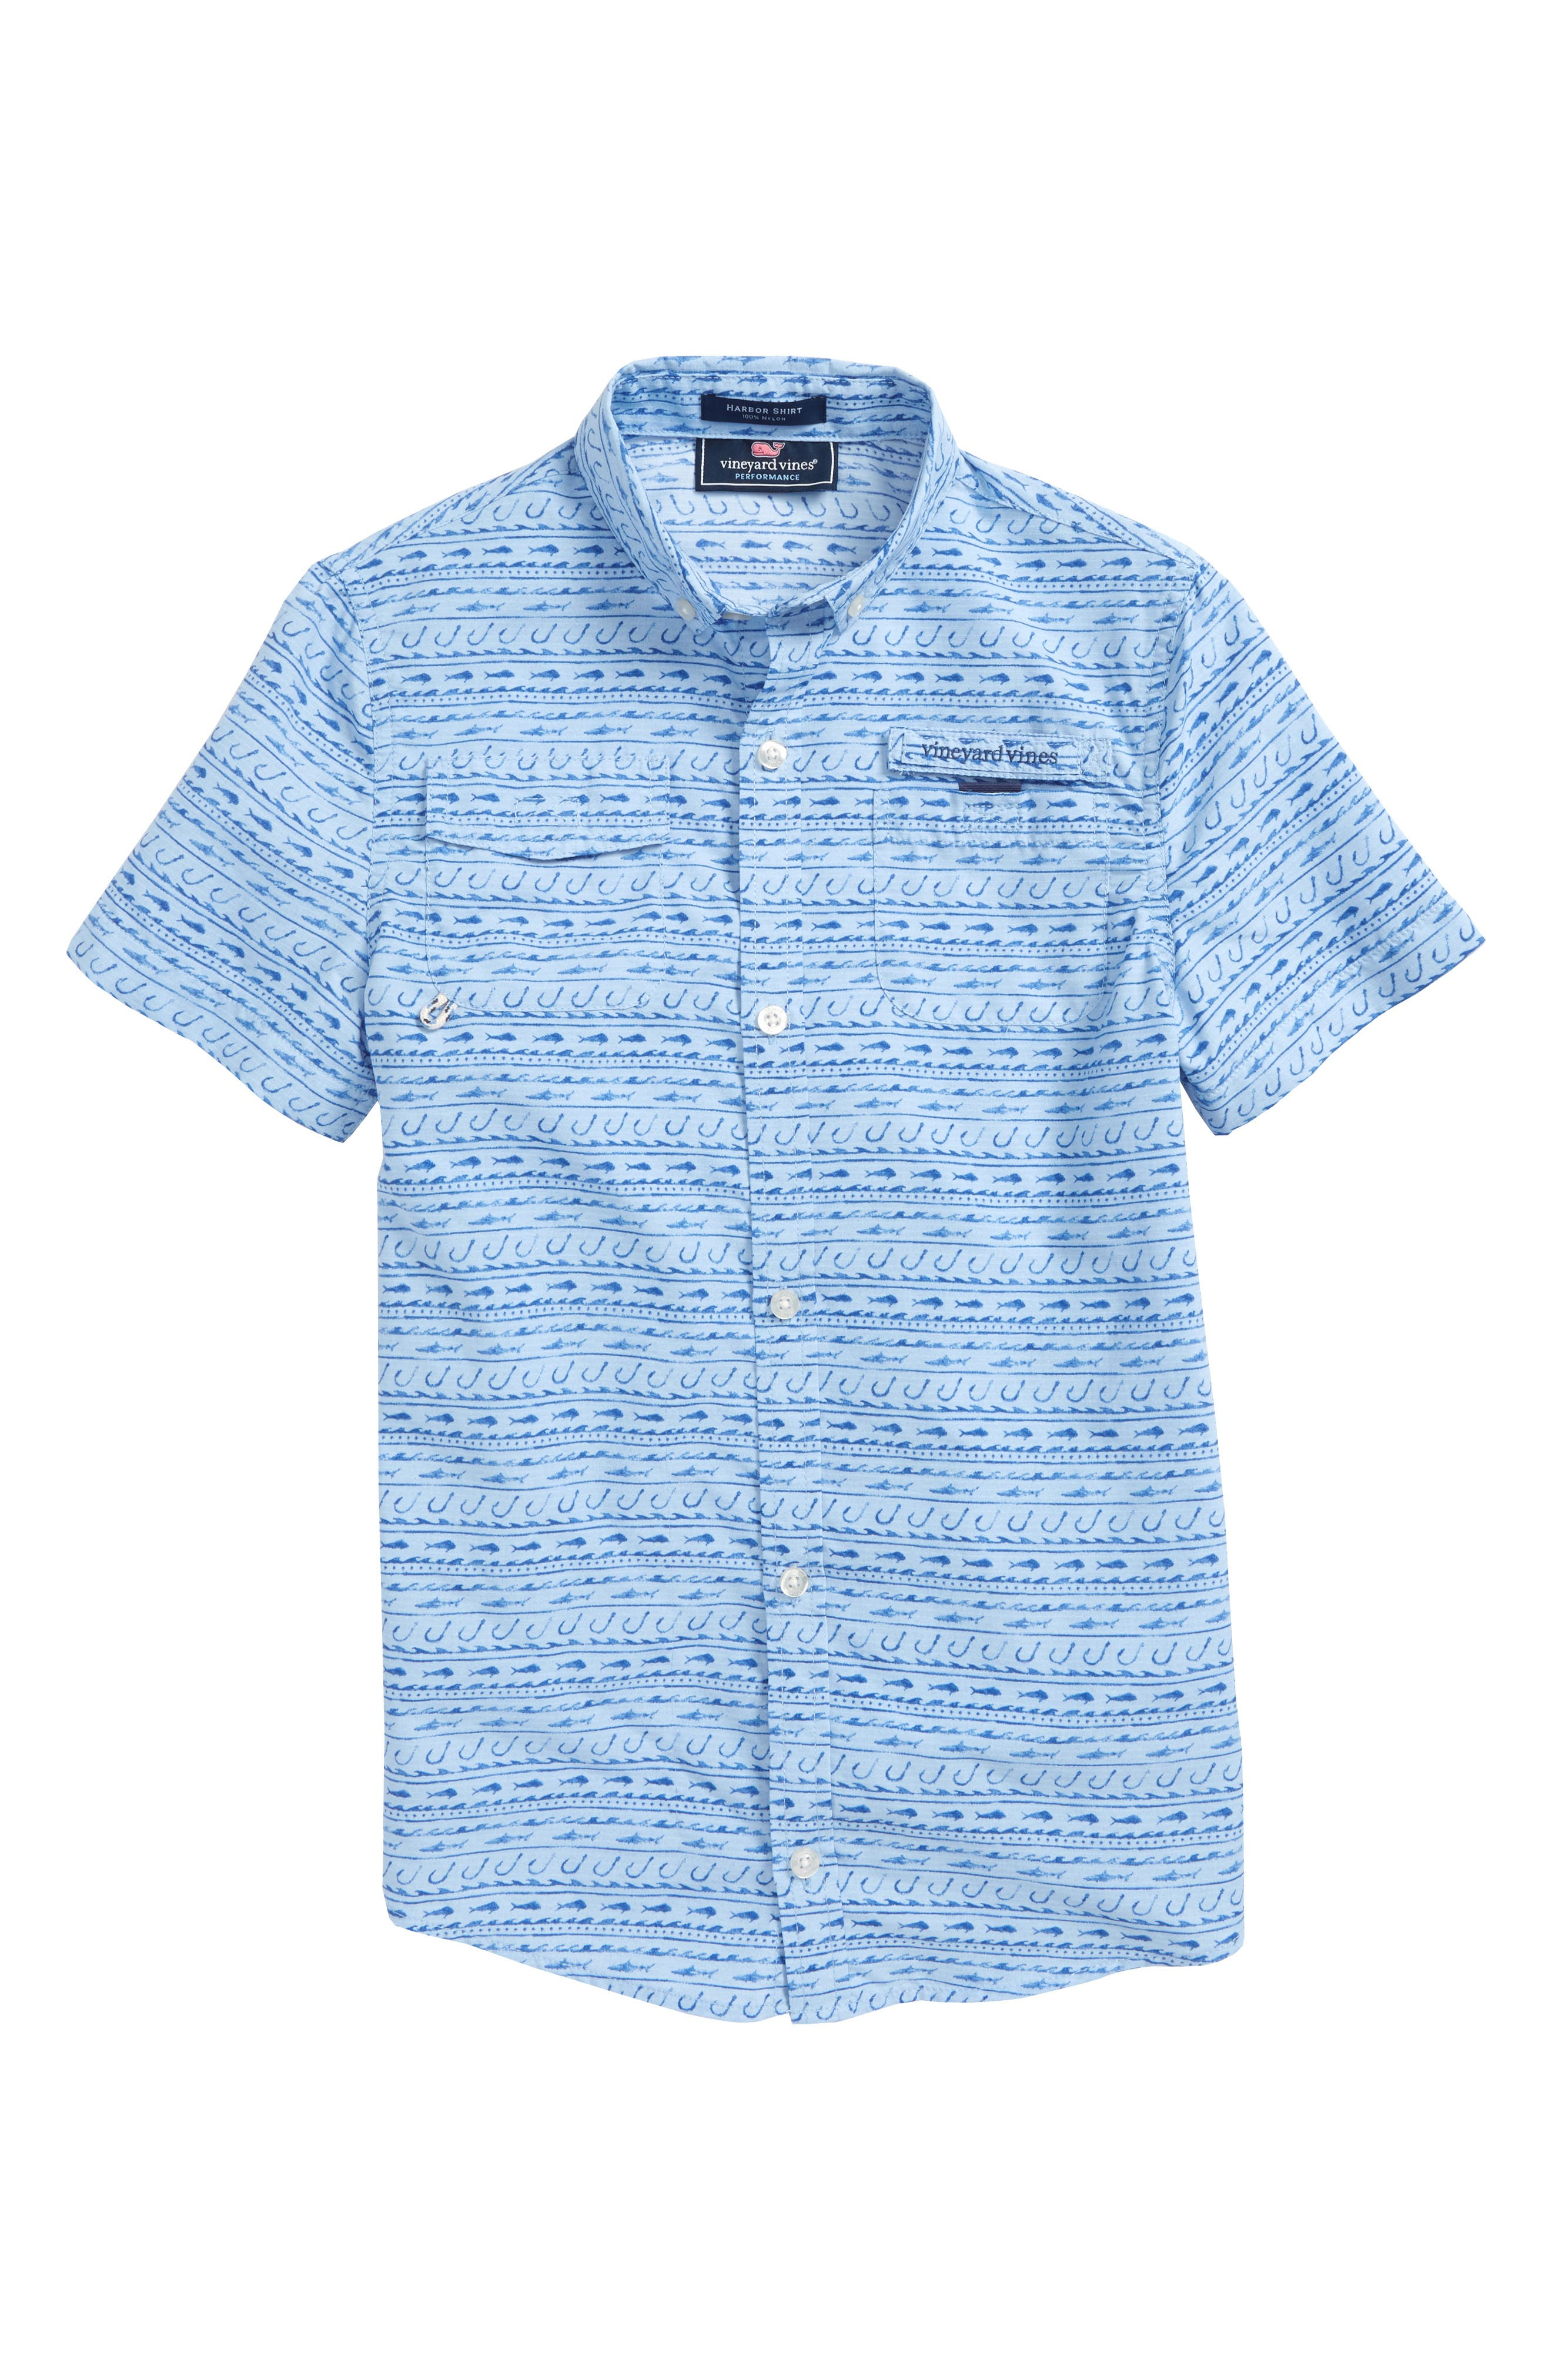 Alternate Image 1 Selected - vineyard vines Harbor Fish Hook Shirt (Big Boys)